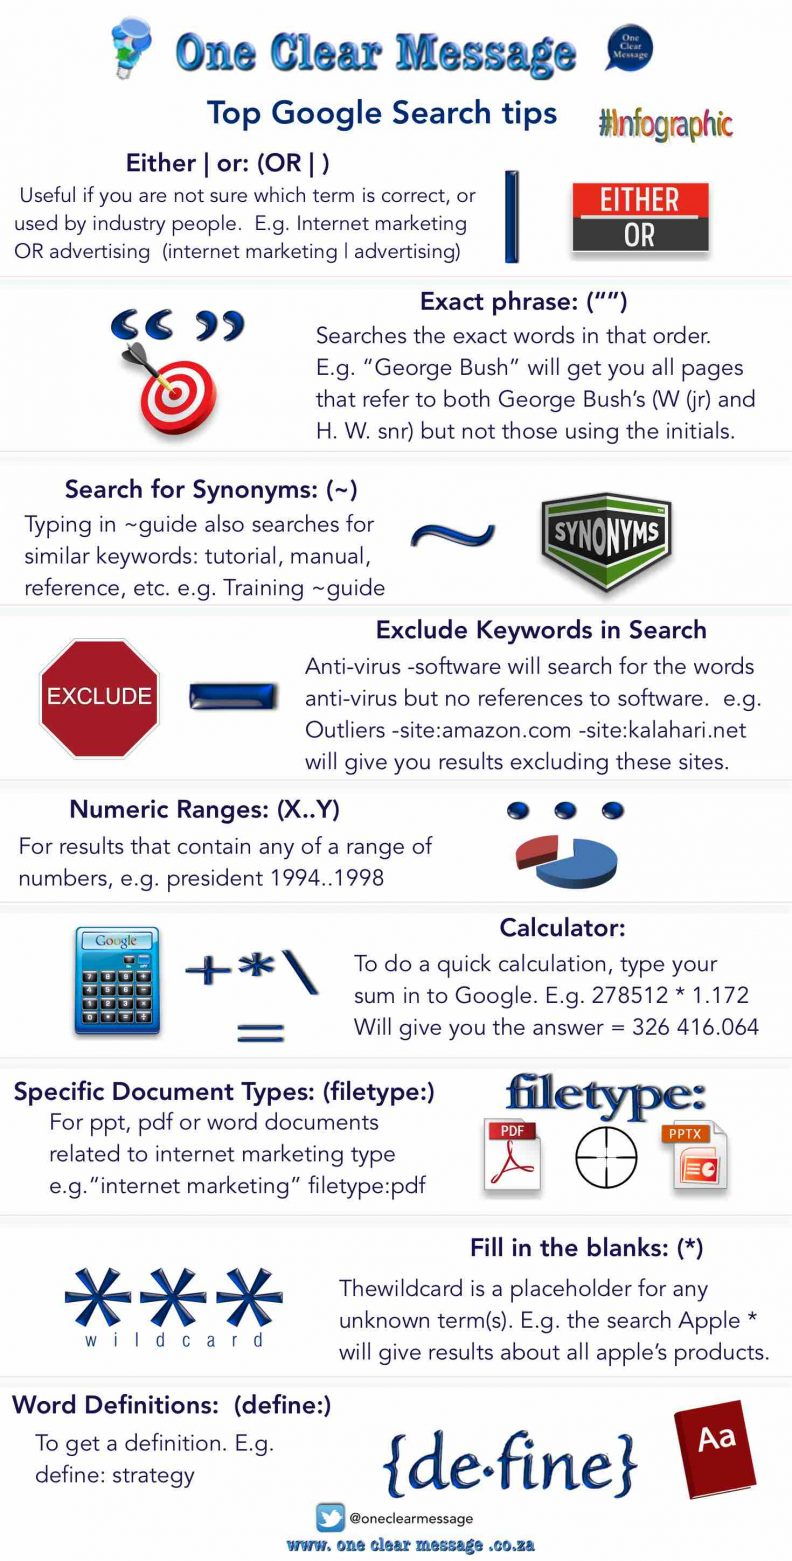 One Clear Message Google Search tips Infographic